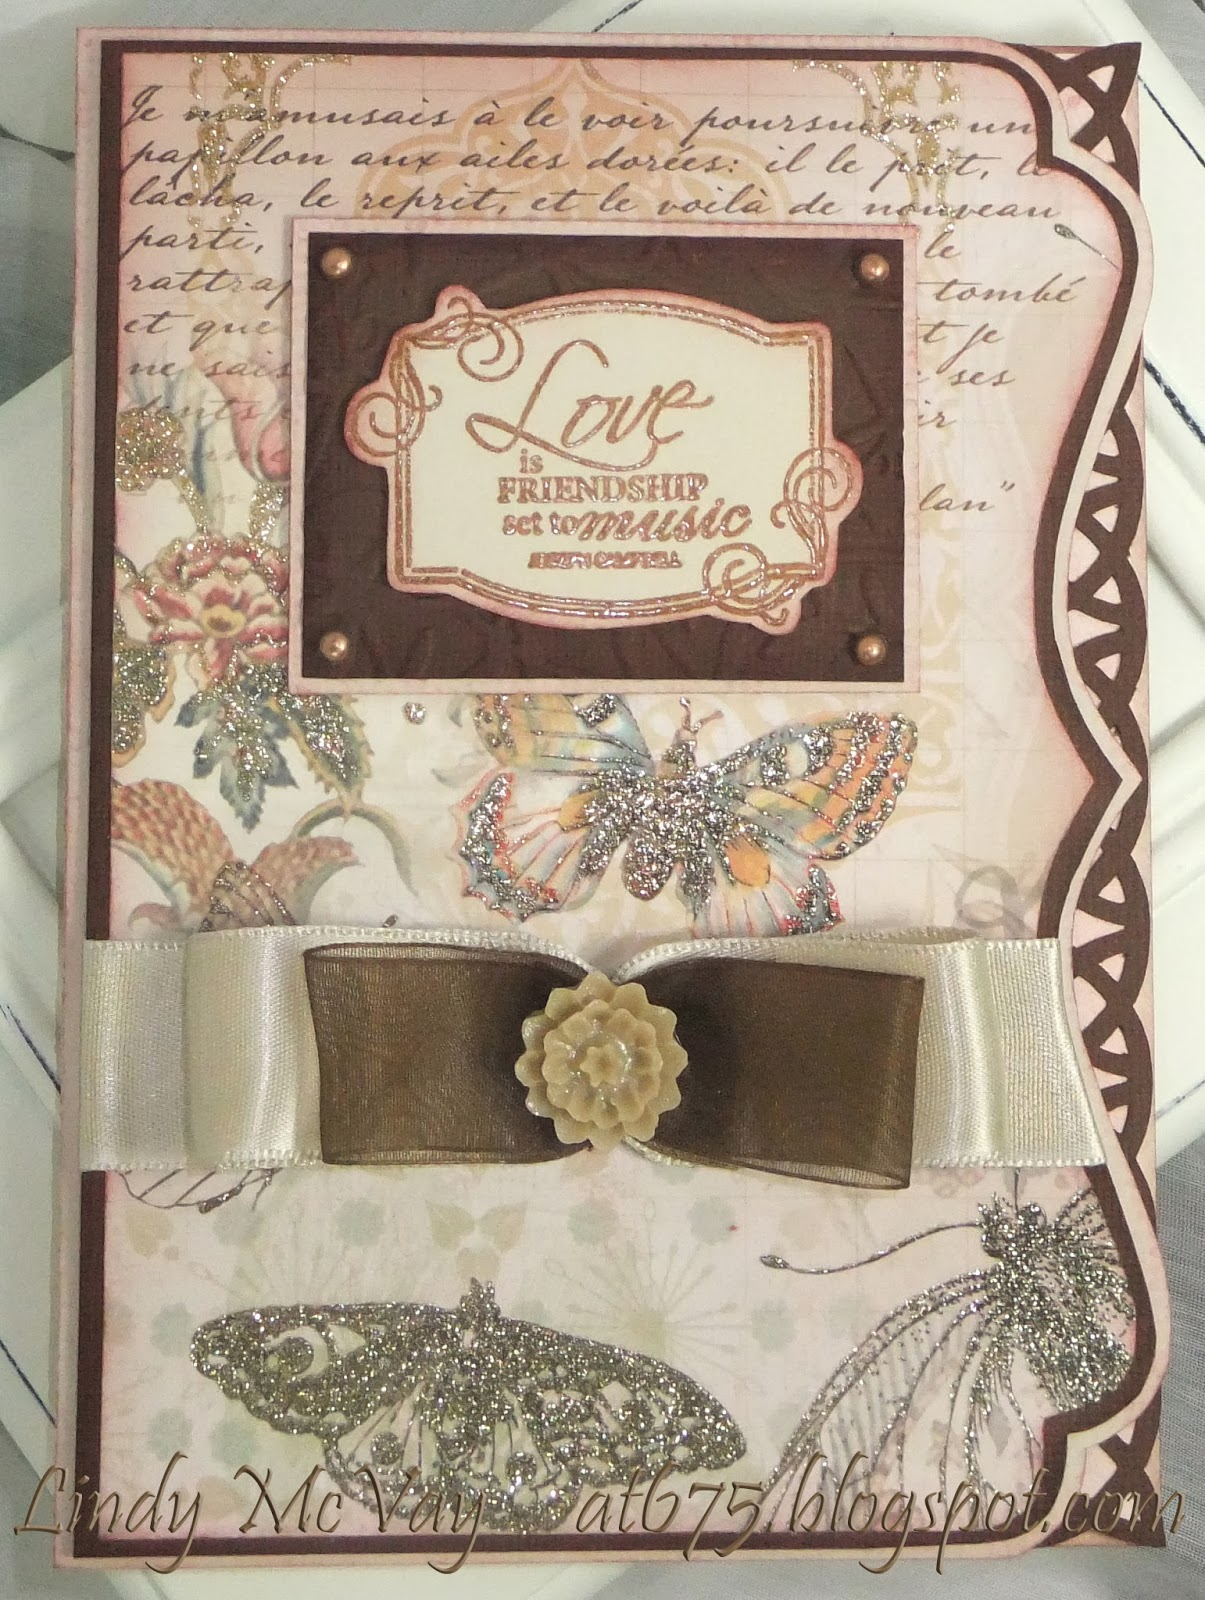 DCWV Mariposa, Silhouette SD, Simon Says Stamp Wednesday Challenge, cards, cards - anniversary, cards - wedding, Tim Holtz Distress Ink, Making Memories, Cuttlebug embossing folder, Offray ribbon, Bazzill Card  Stock, Tattered Angels Glimmer Mist, Fiskars stamp